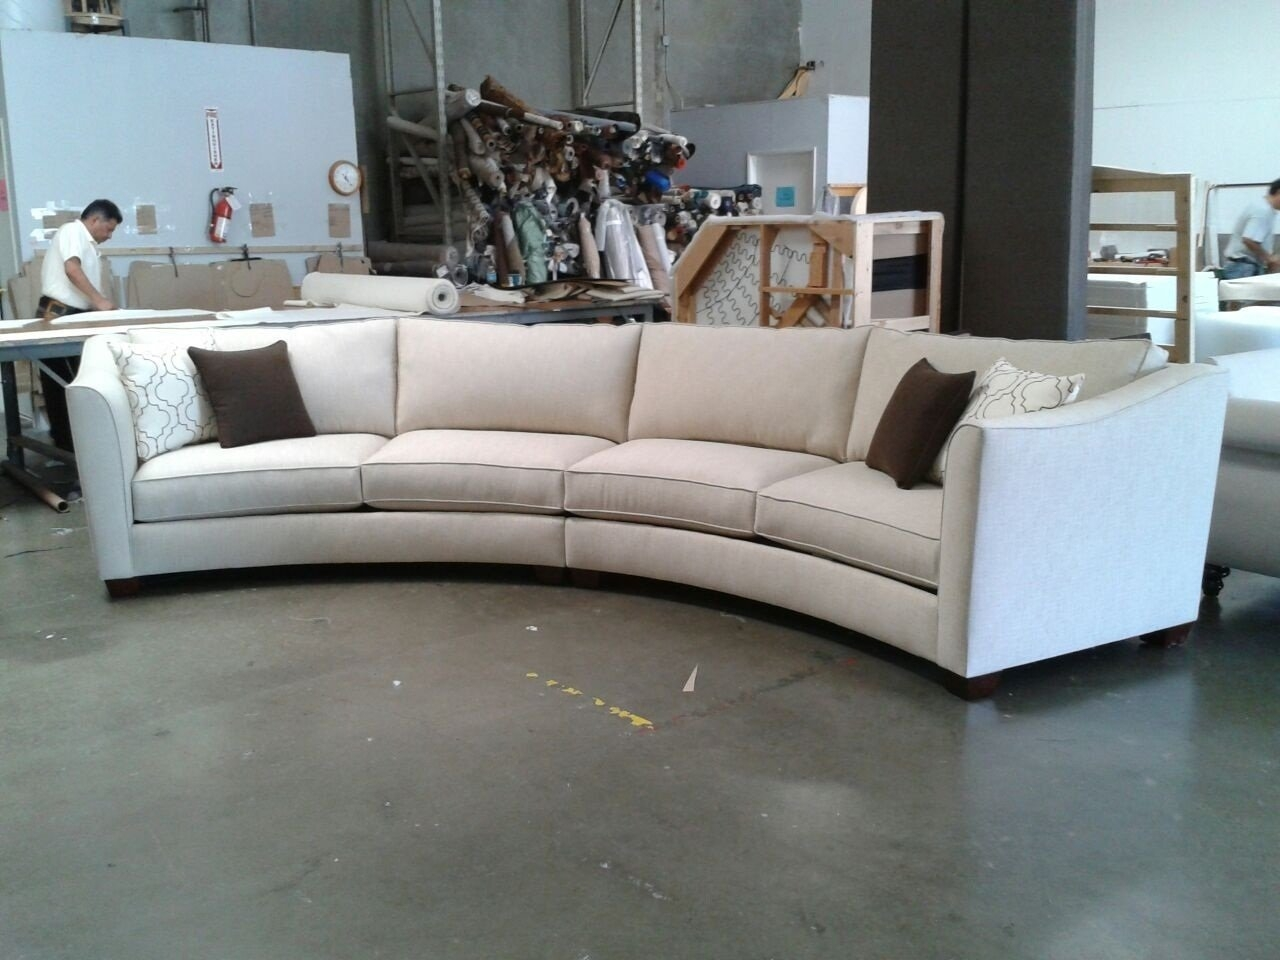 Curved Sectional Sofa Set Rich Comfortable Upholstered Fabric Regarding Contemporary Curved Sofas (Image 4 of 15)